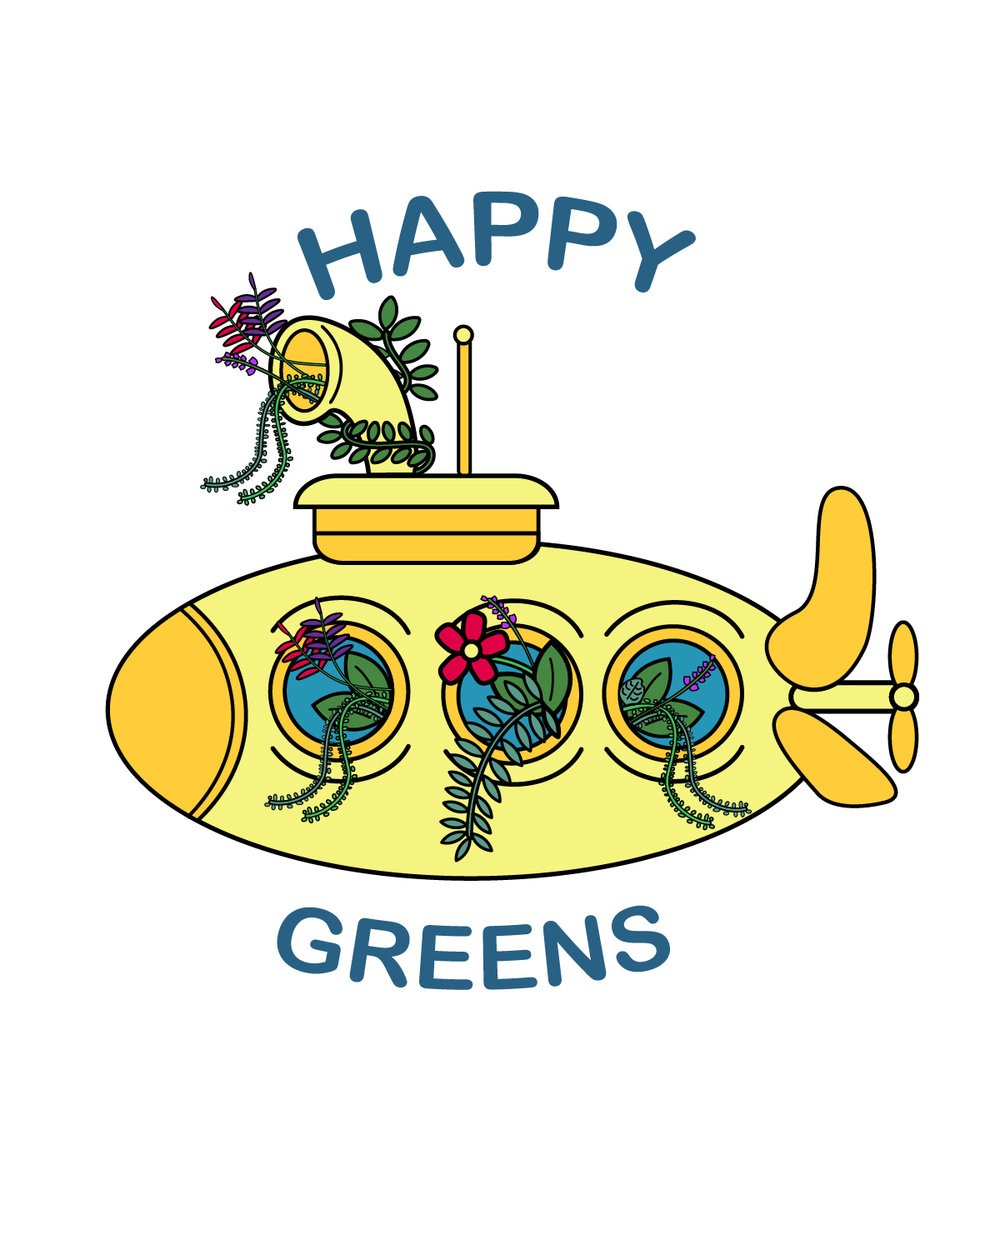 happy greens white background.jpg